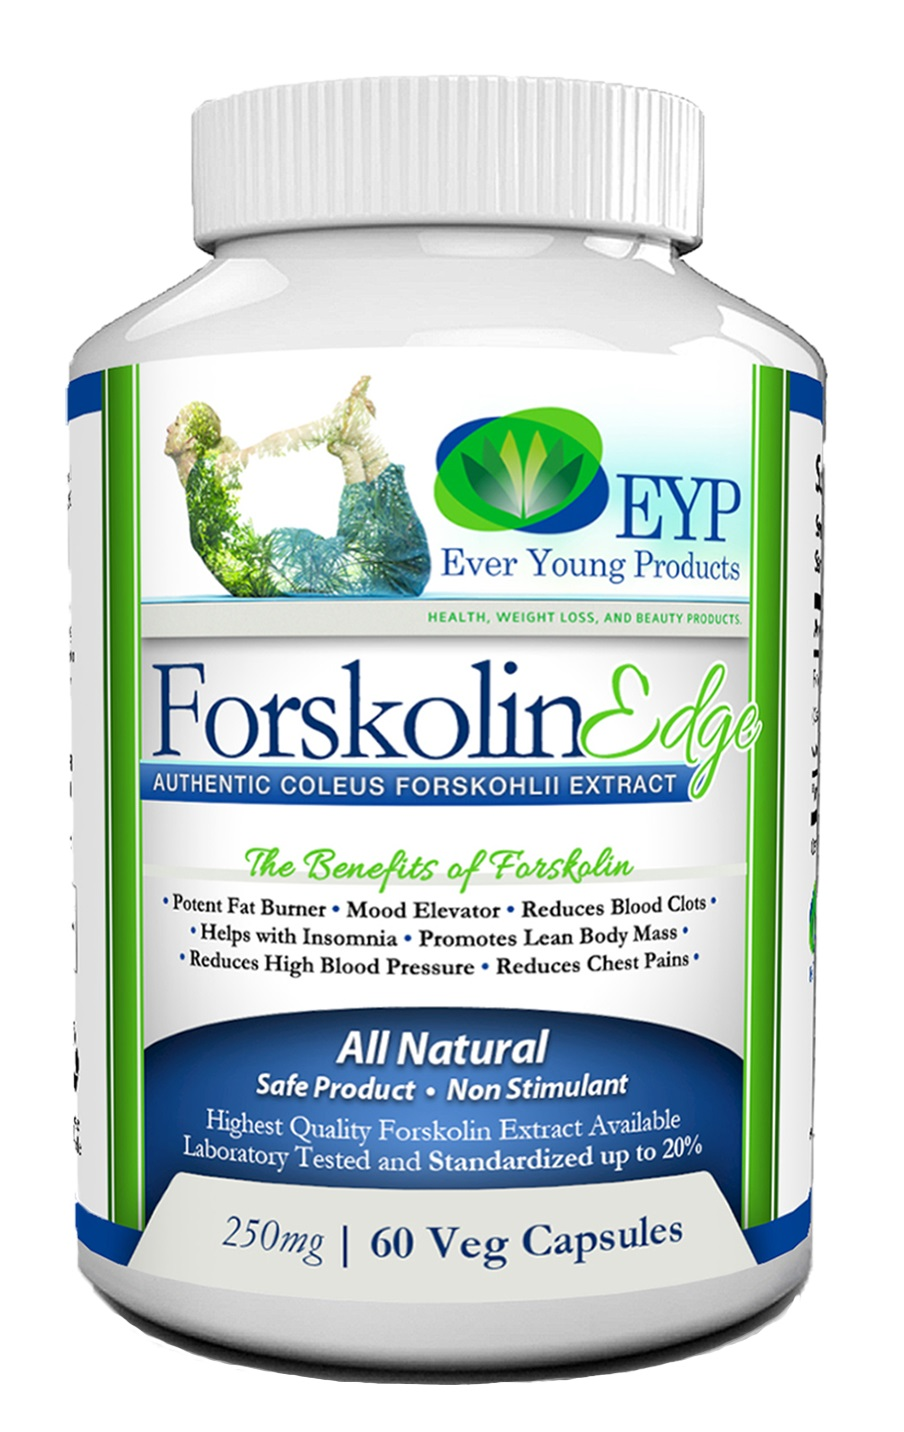 Forskolin Edge - Best Weight Loss